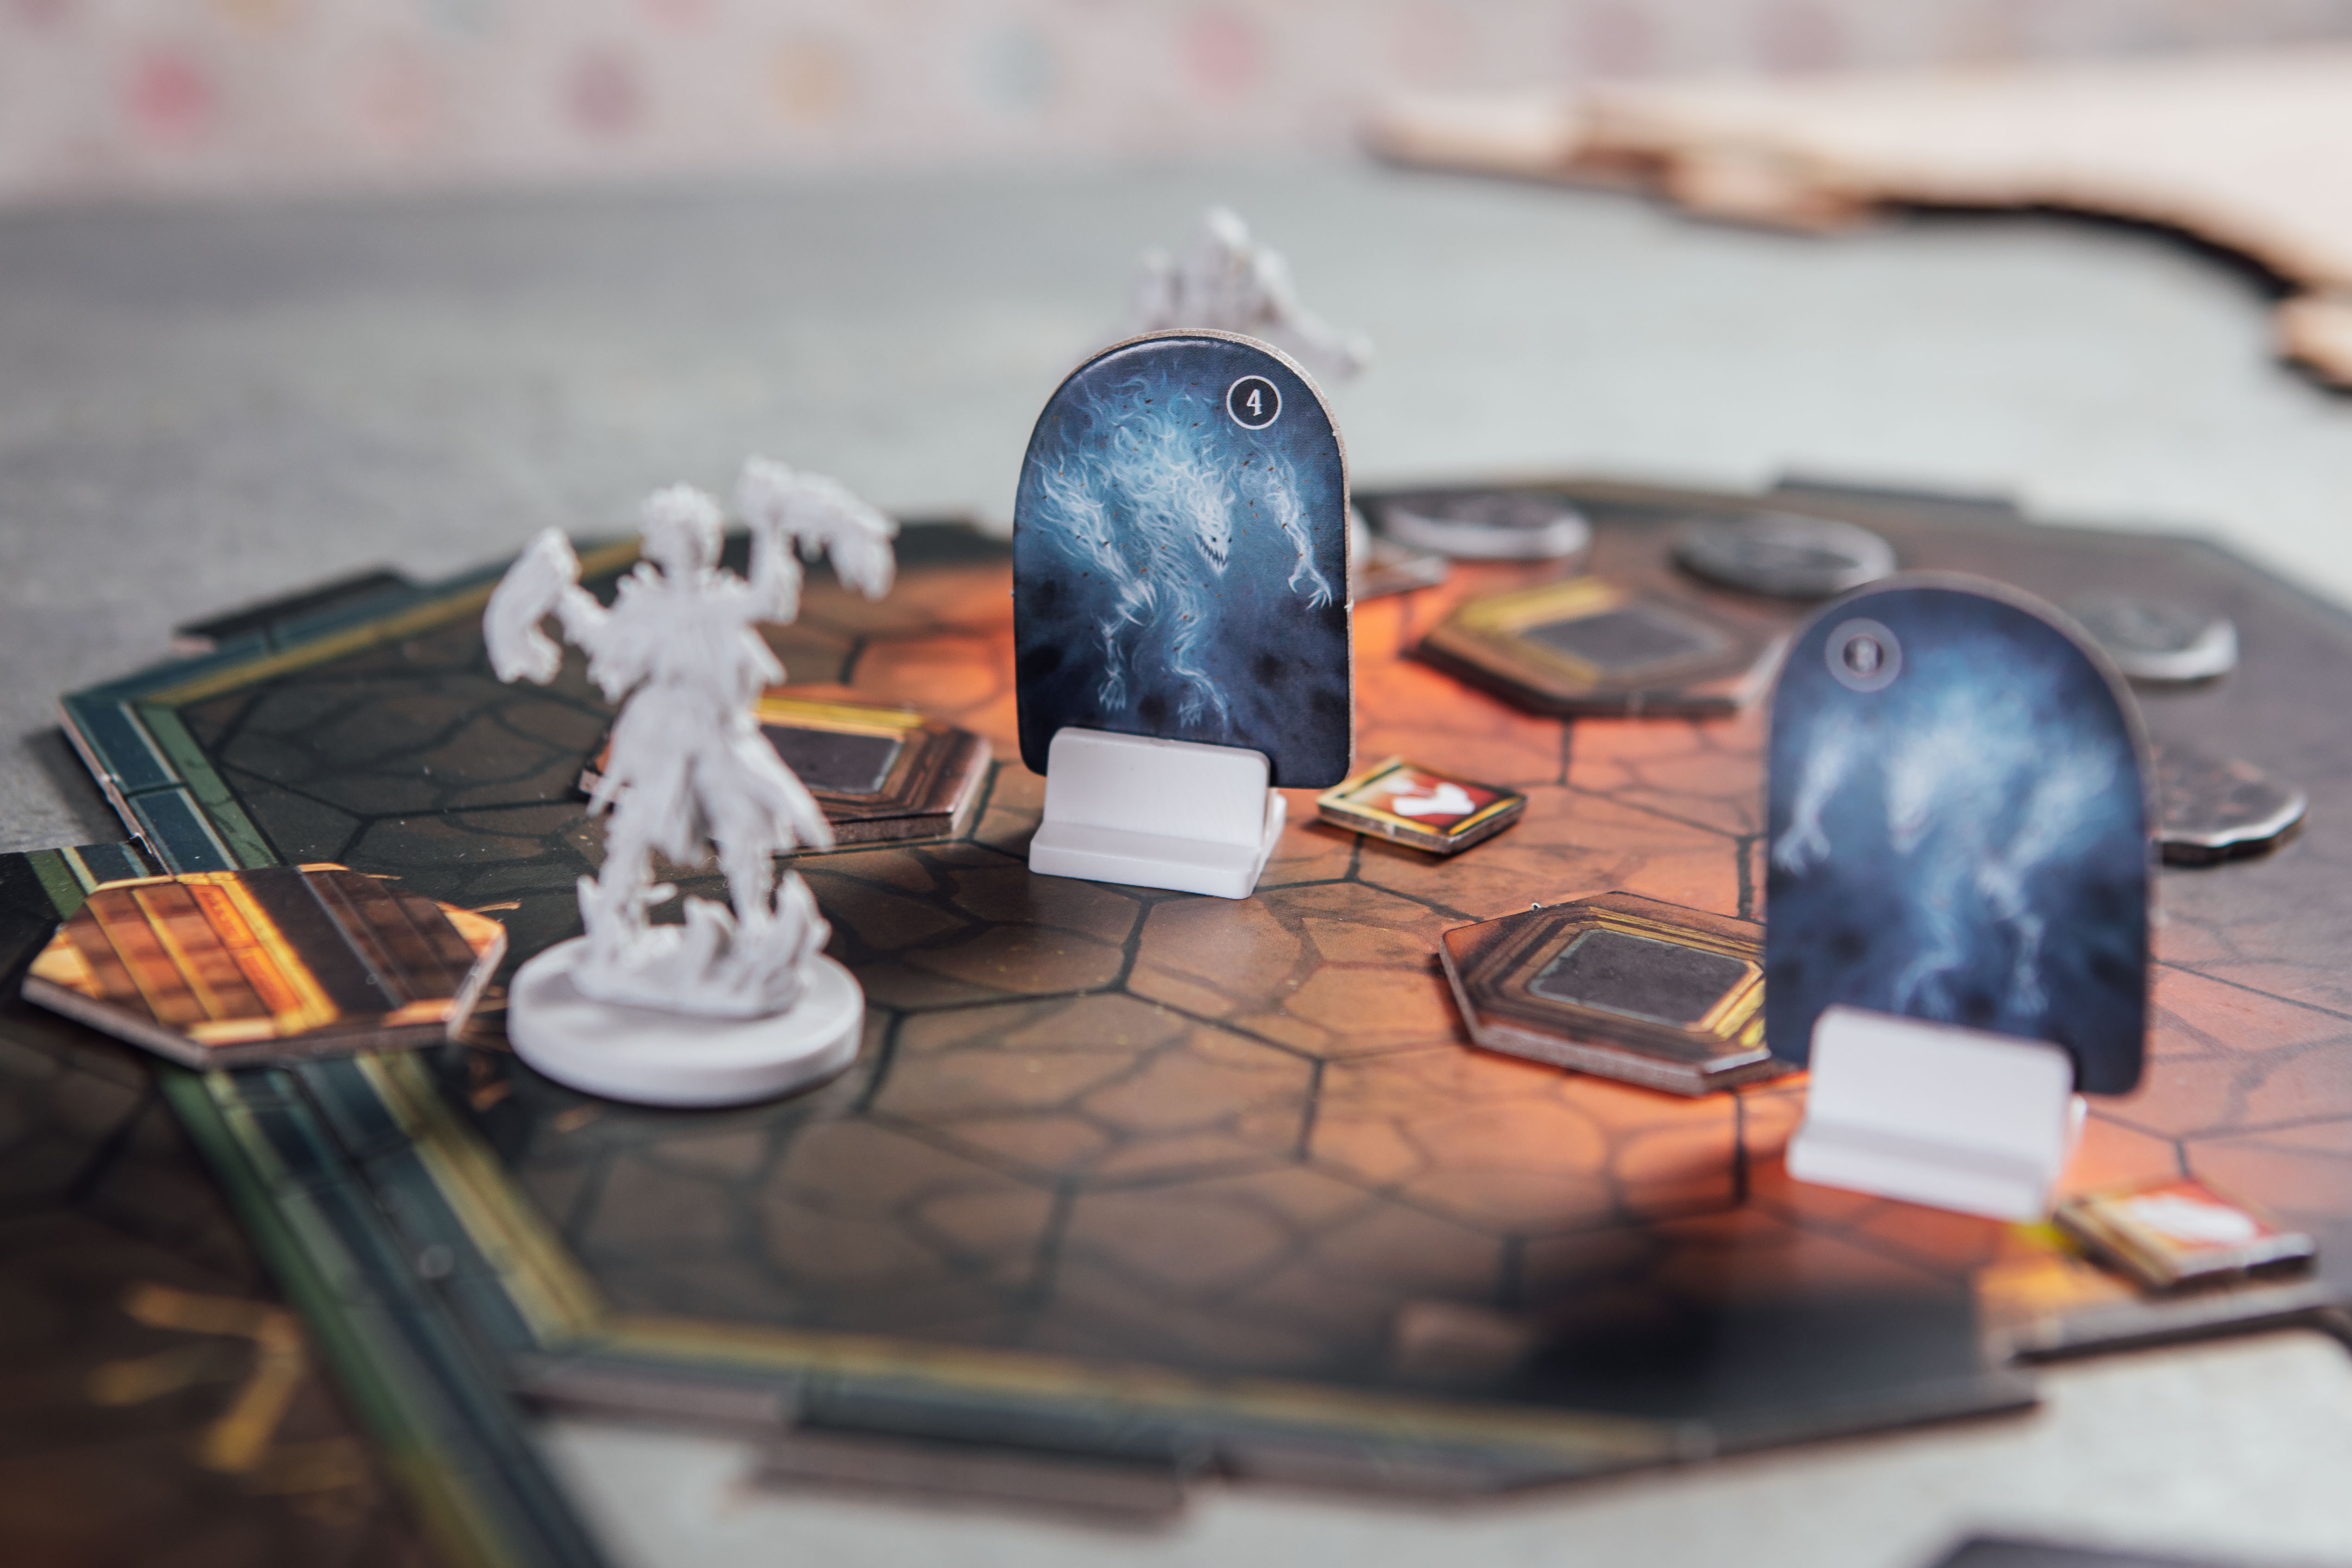 Gloomhaven Crypt of the Damned final room wind demon battle